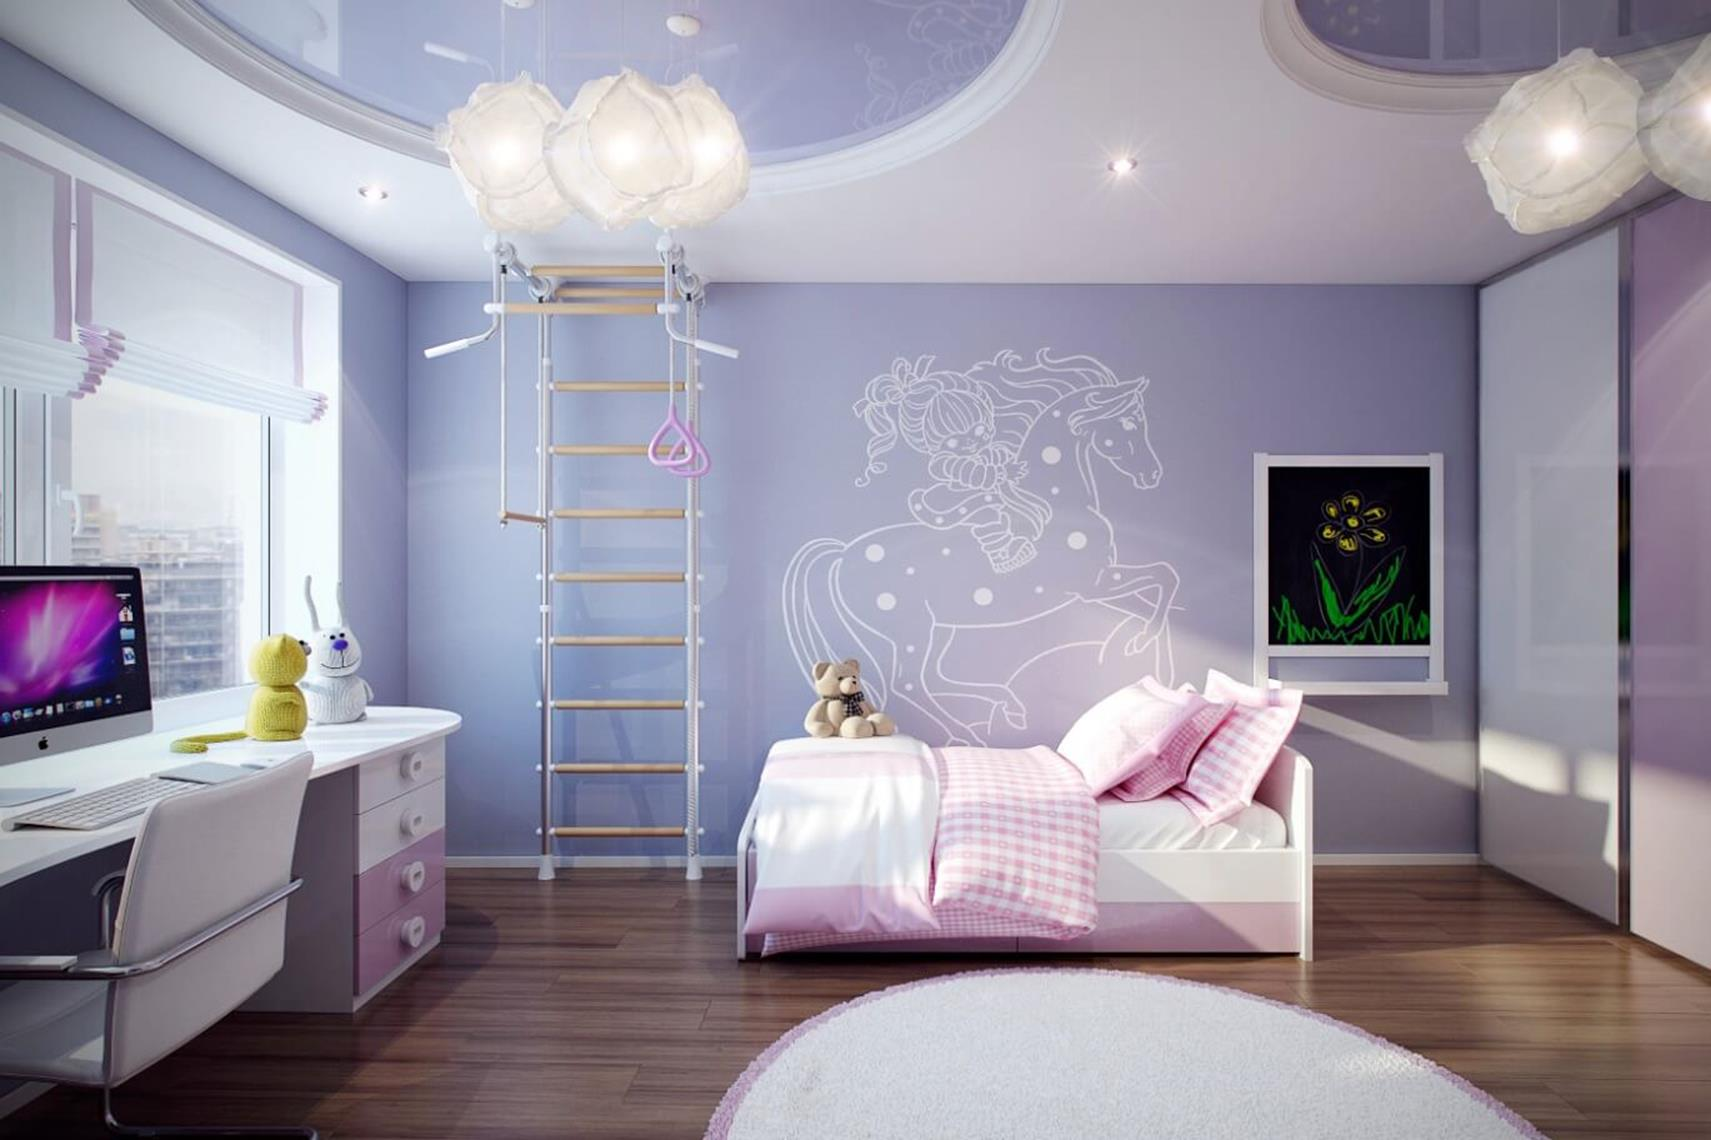 Perfect Bedroom Decorating Idea for Craft 44